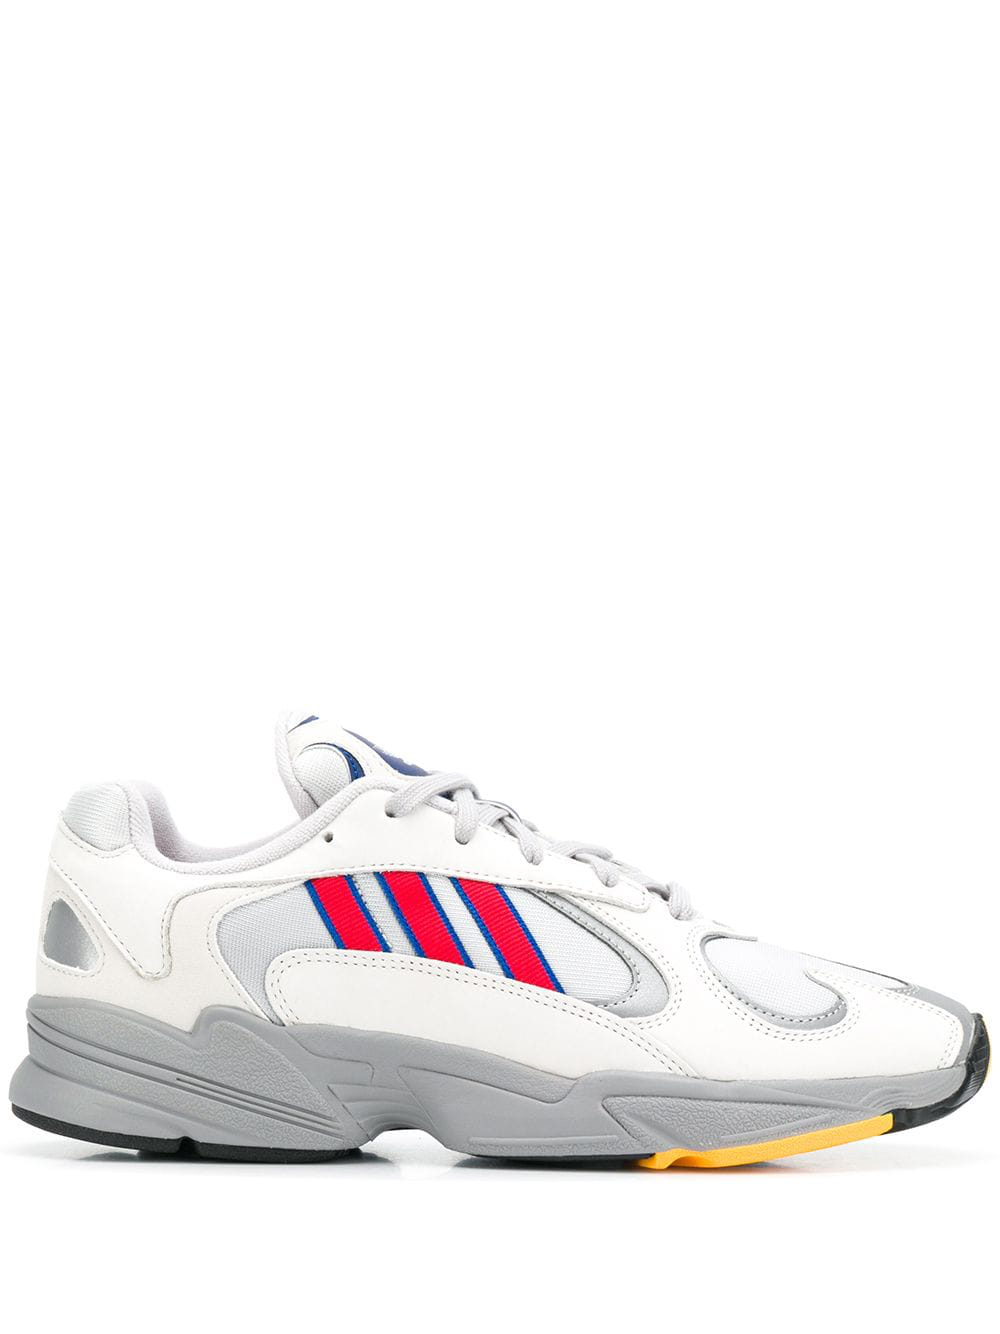 new product 95744 229a8 Adidas Originals Adidas Off-White Yung 1 Mesh Insert Low-Top